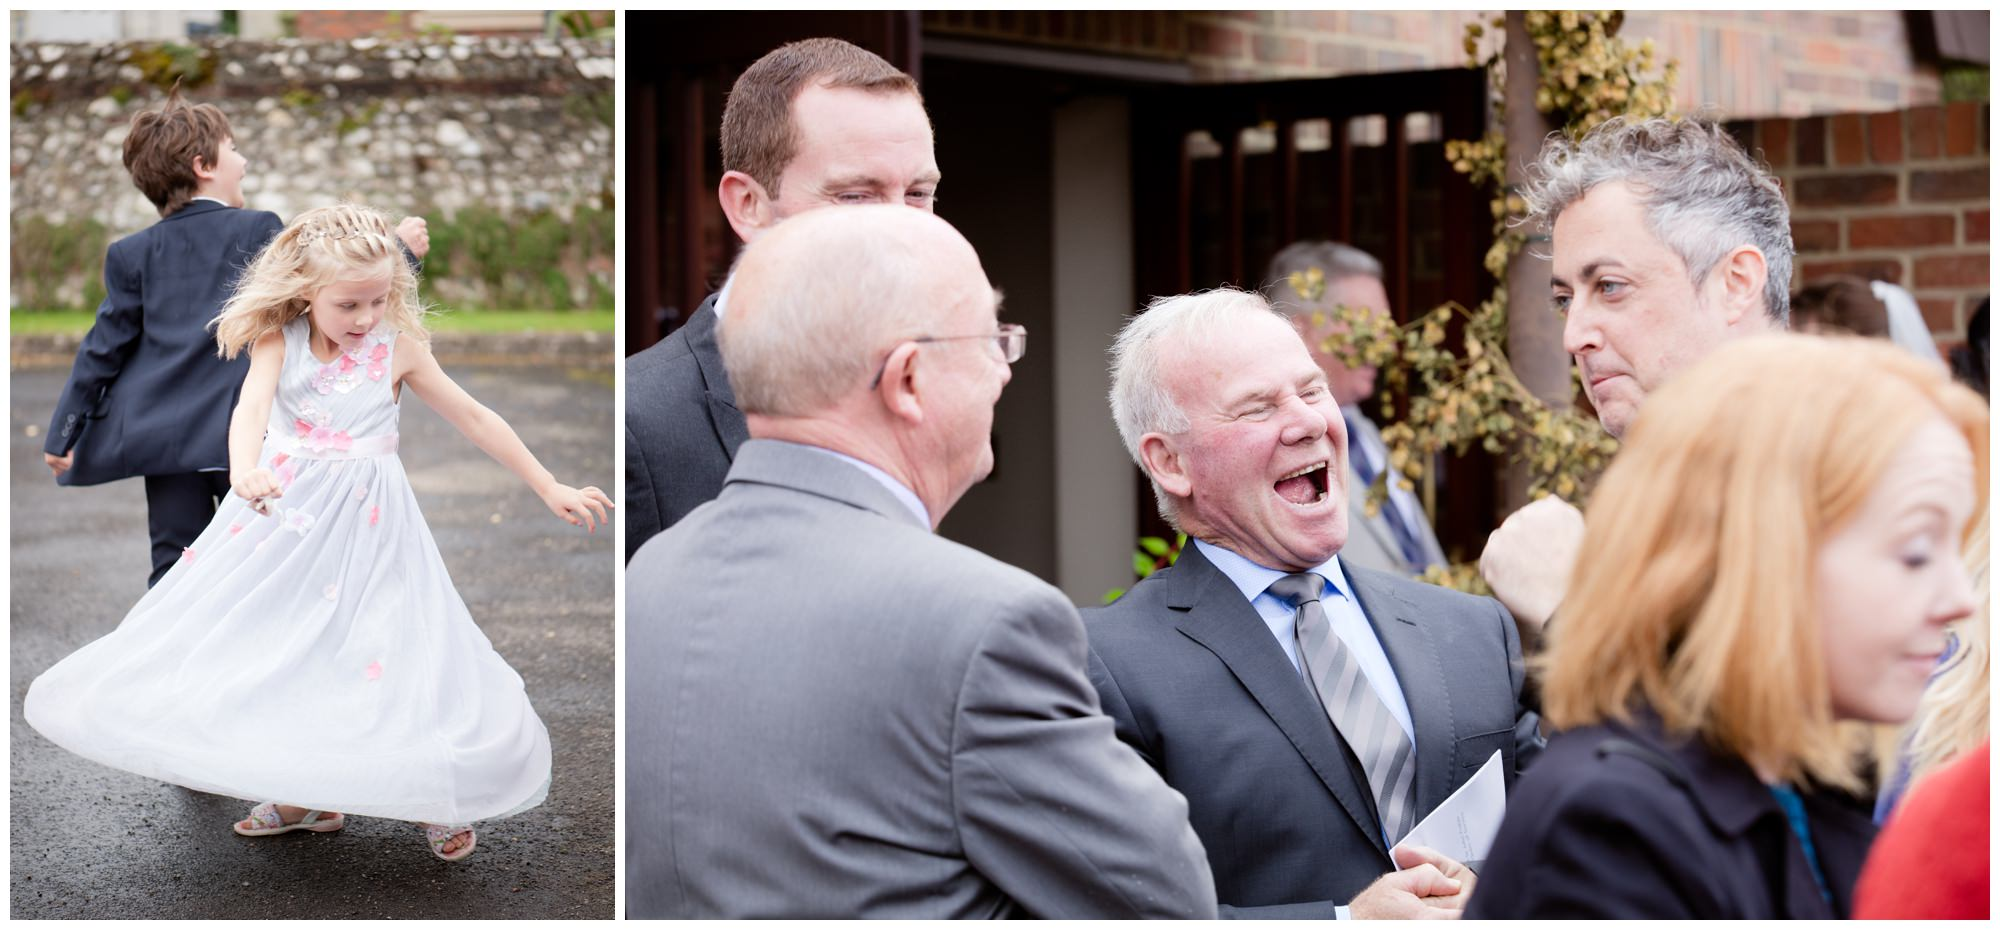 Guests at Whitchurch Wedding